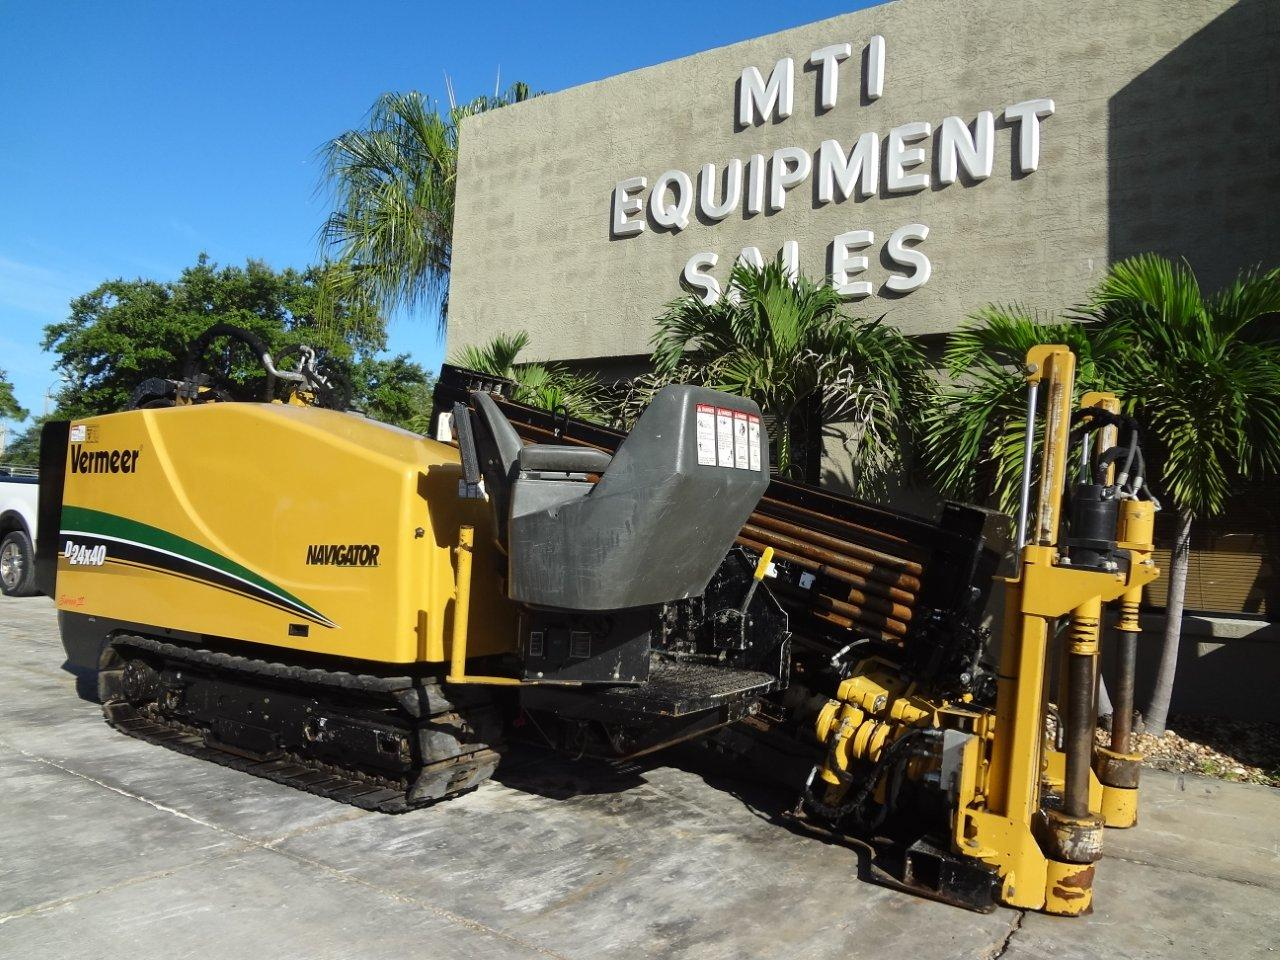 This 2010 Vermeer 24X40 Series 2 directional drill is available from Garner Equipment.